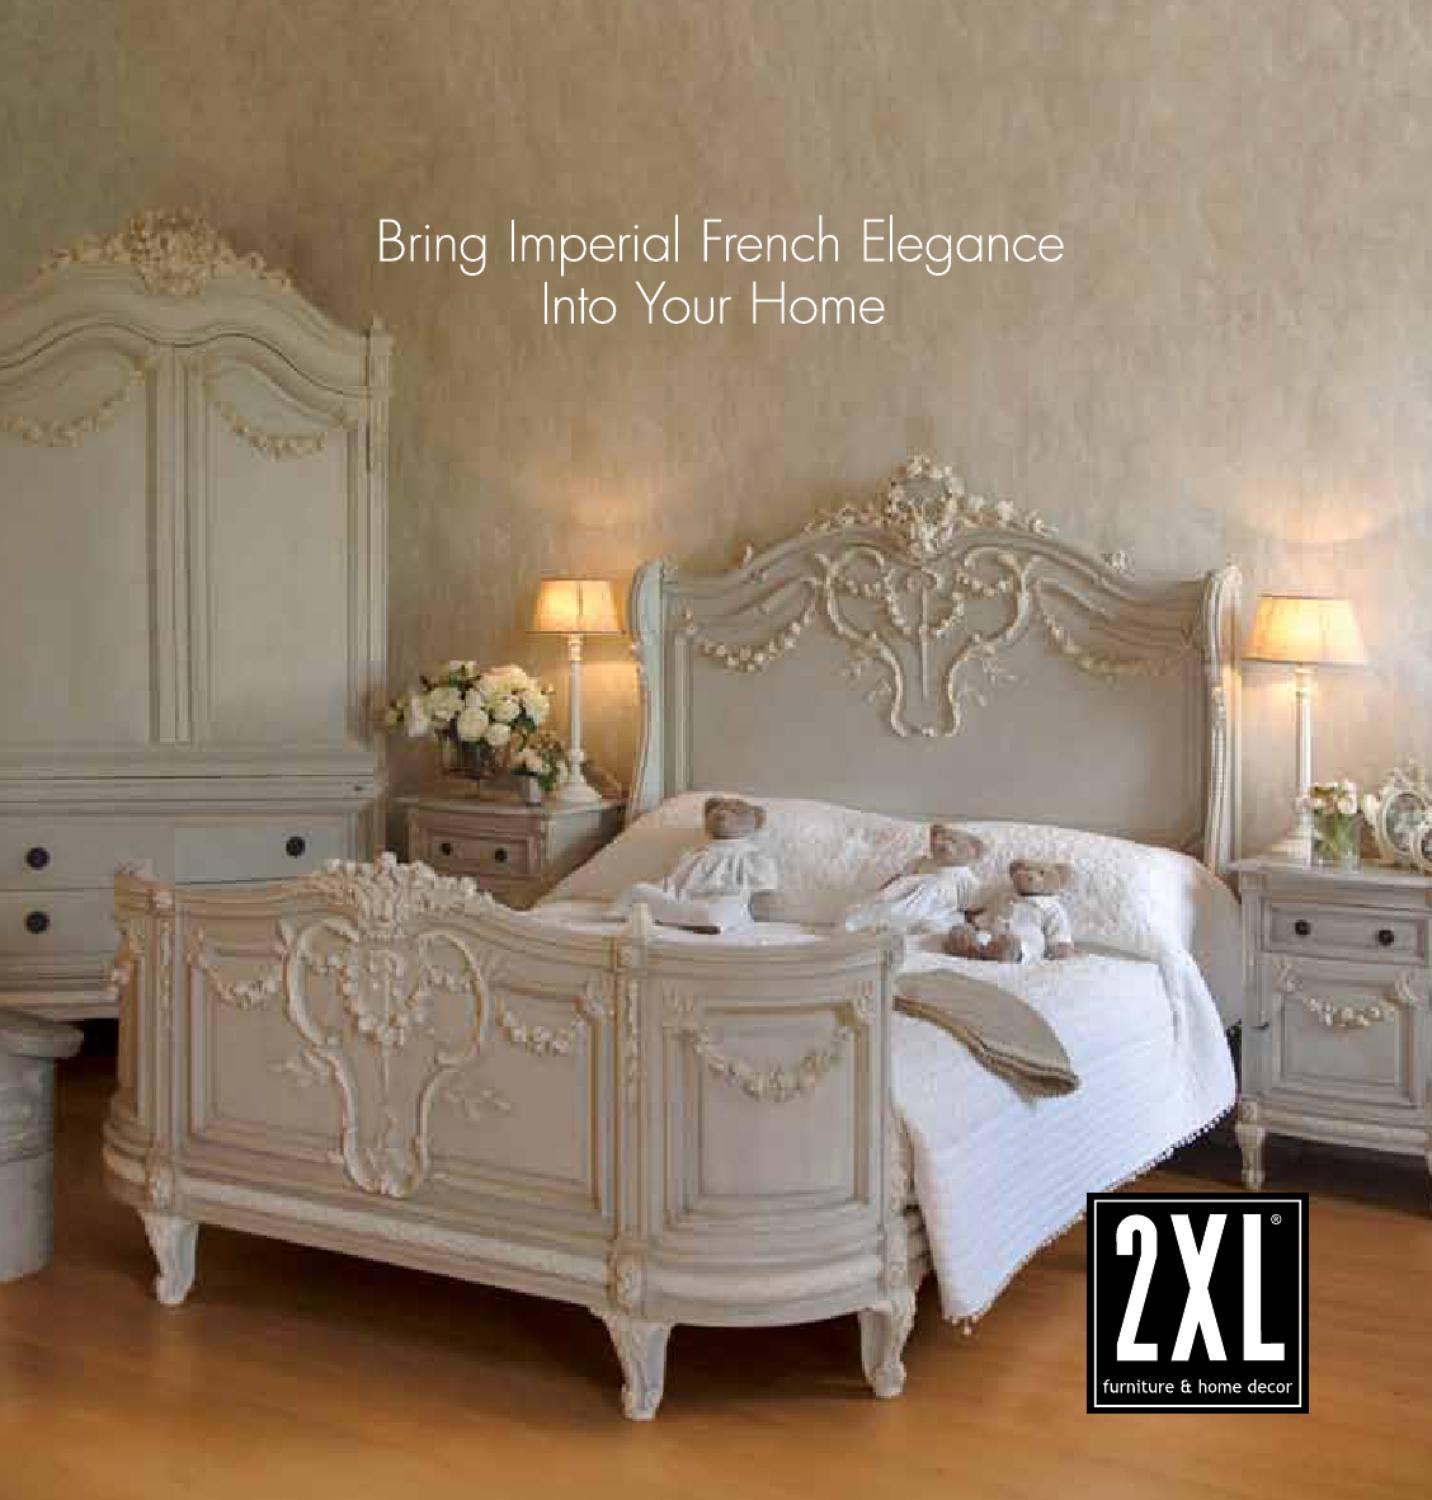 2xl furniture home decor by hot media issuu for Home decor and furniture